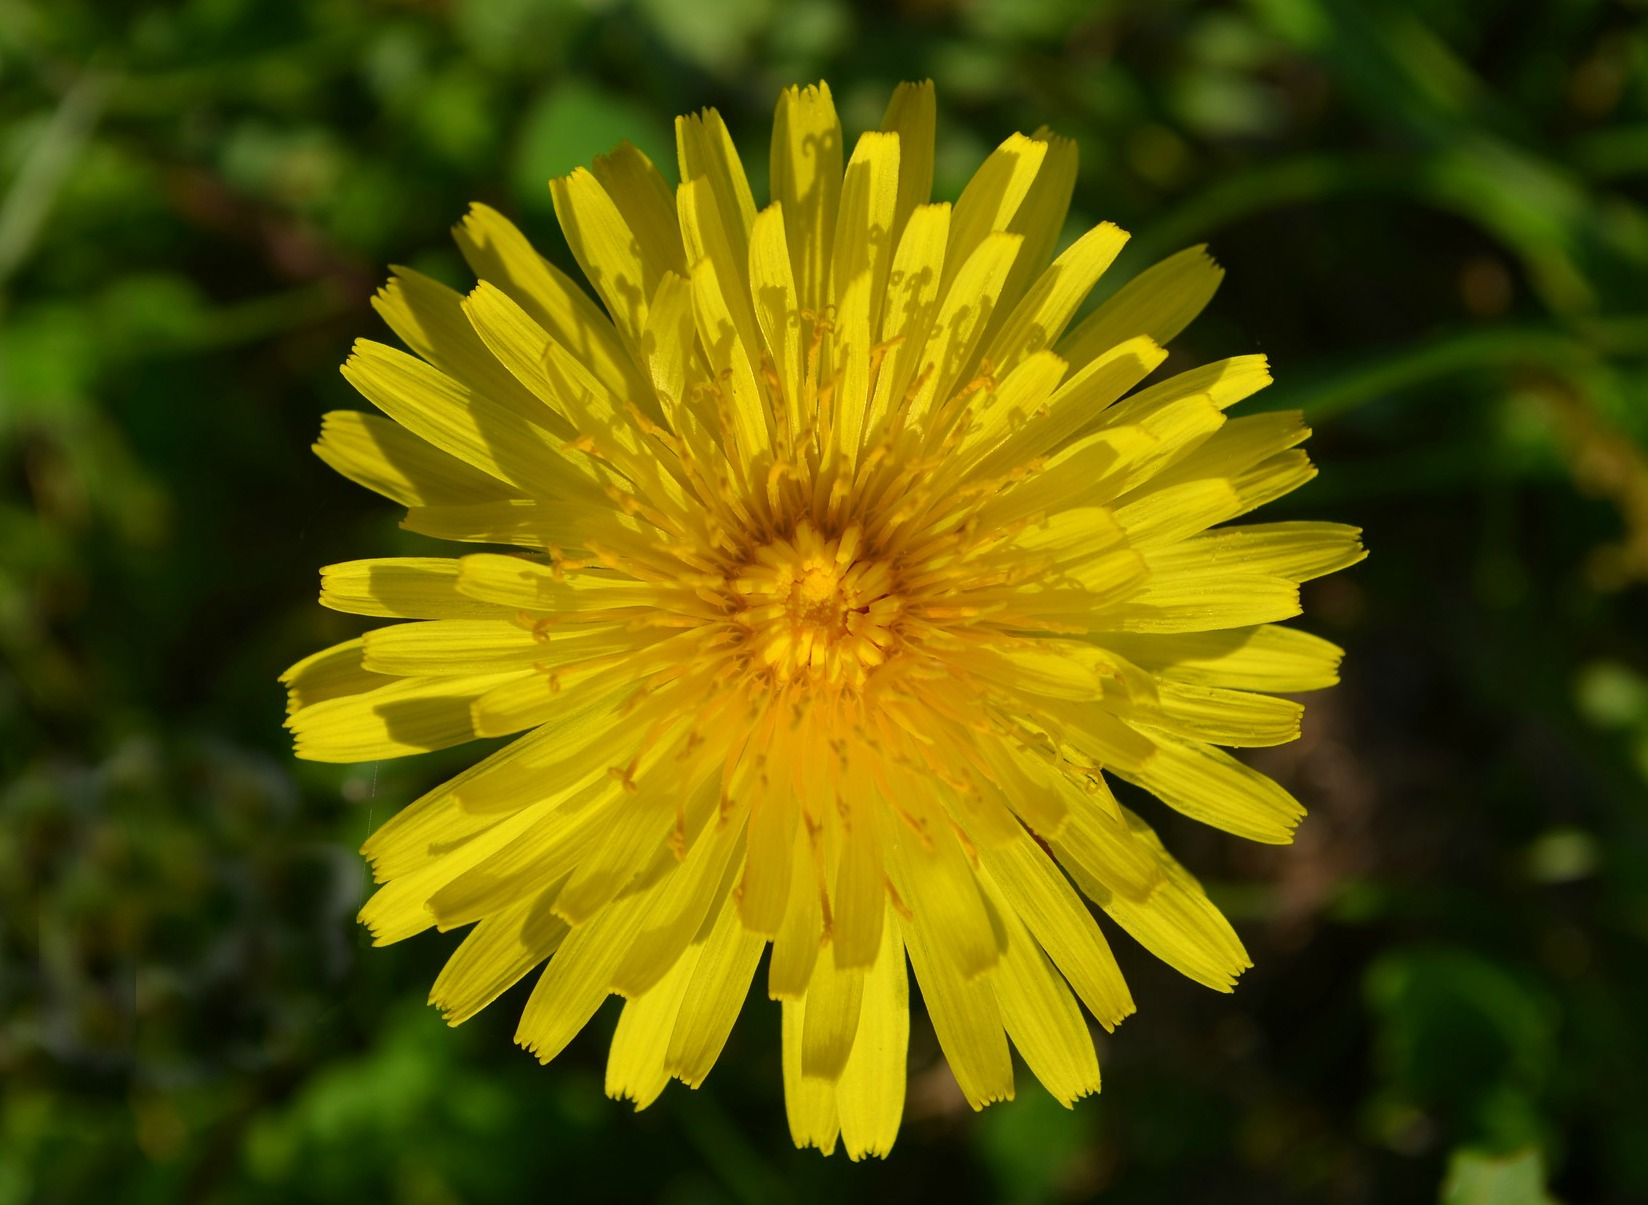 A Dandelion is a beautiful flower.